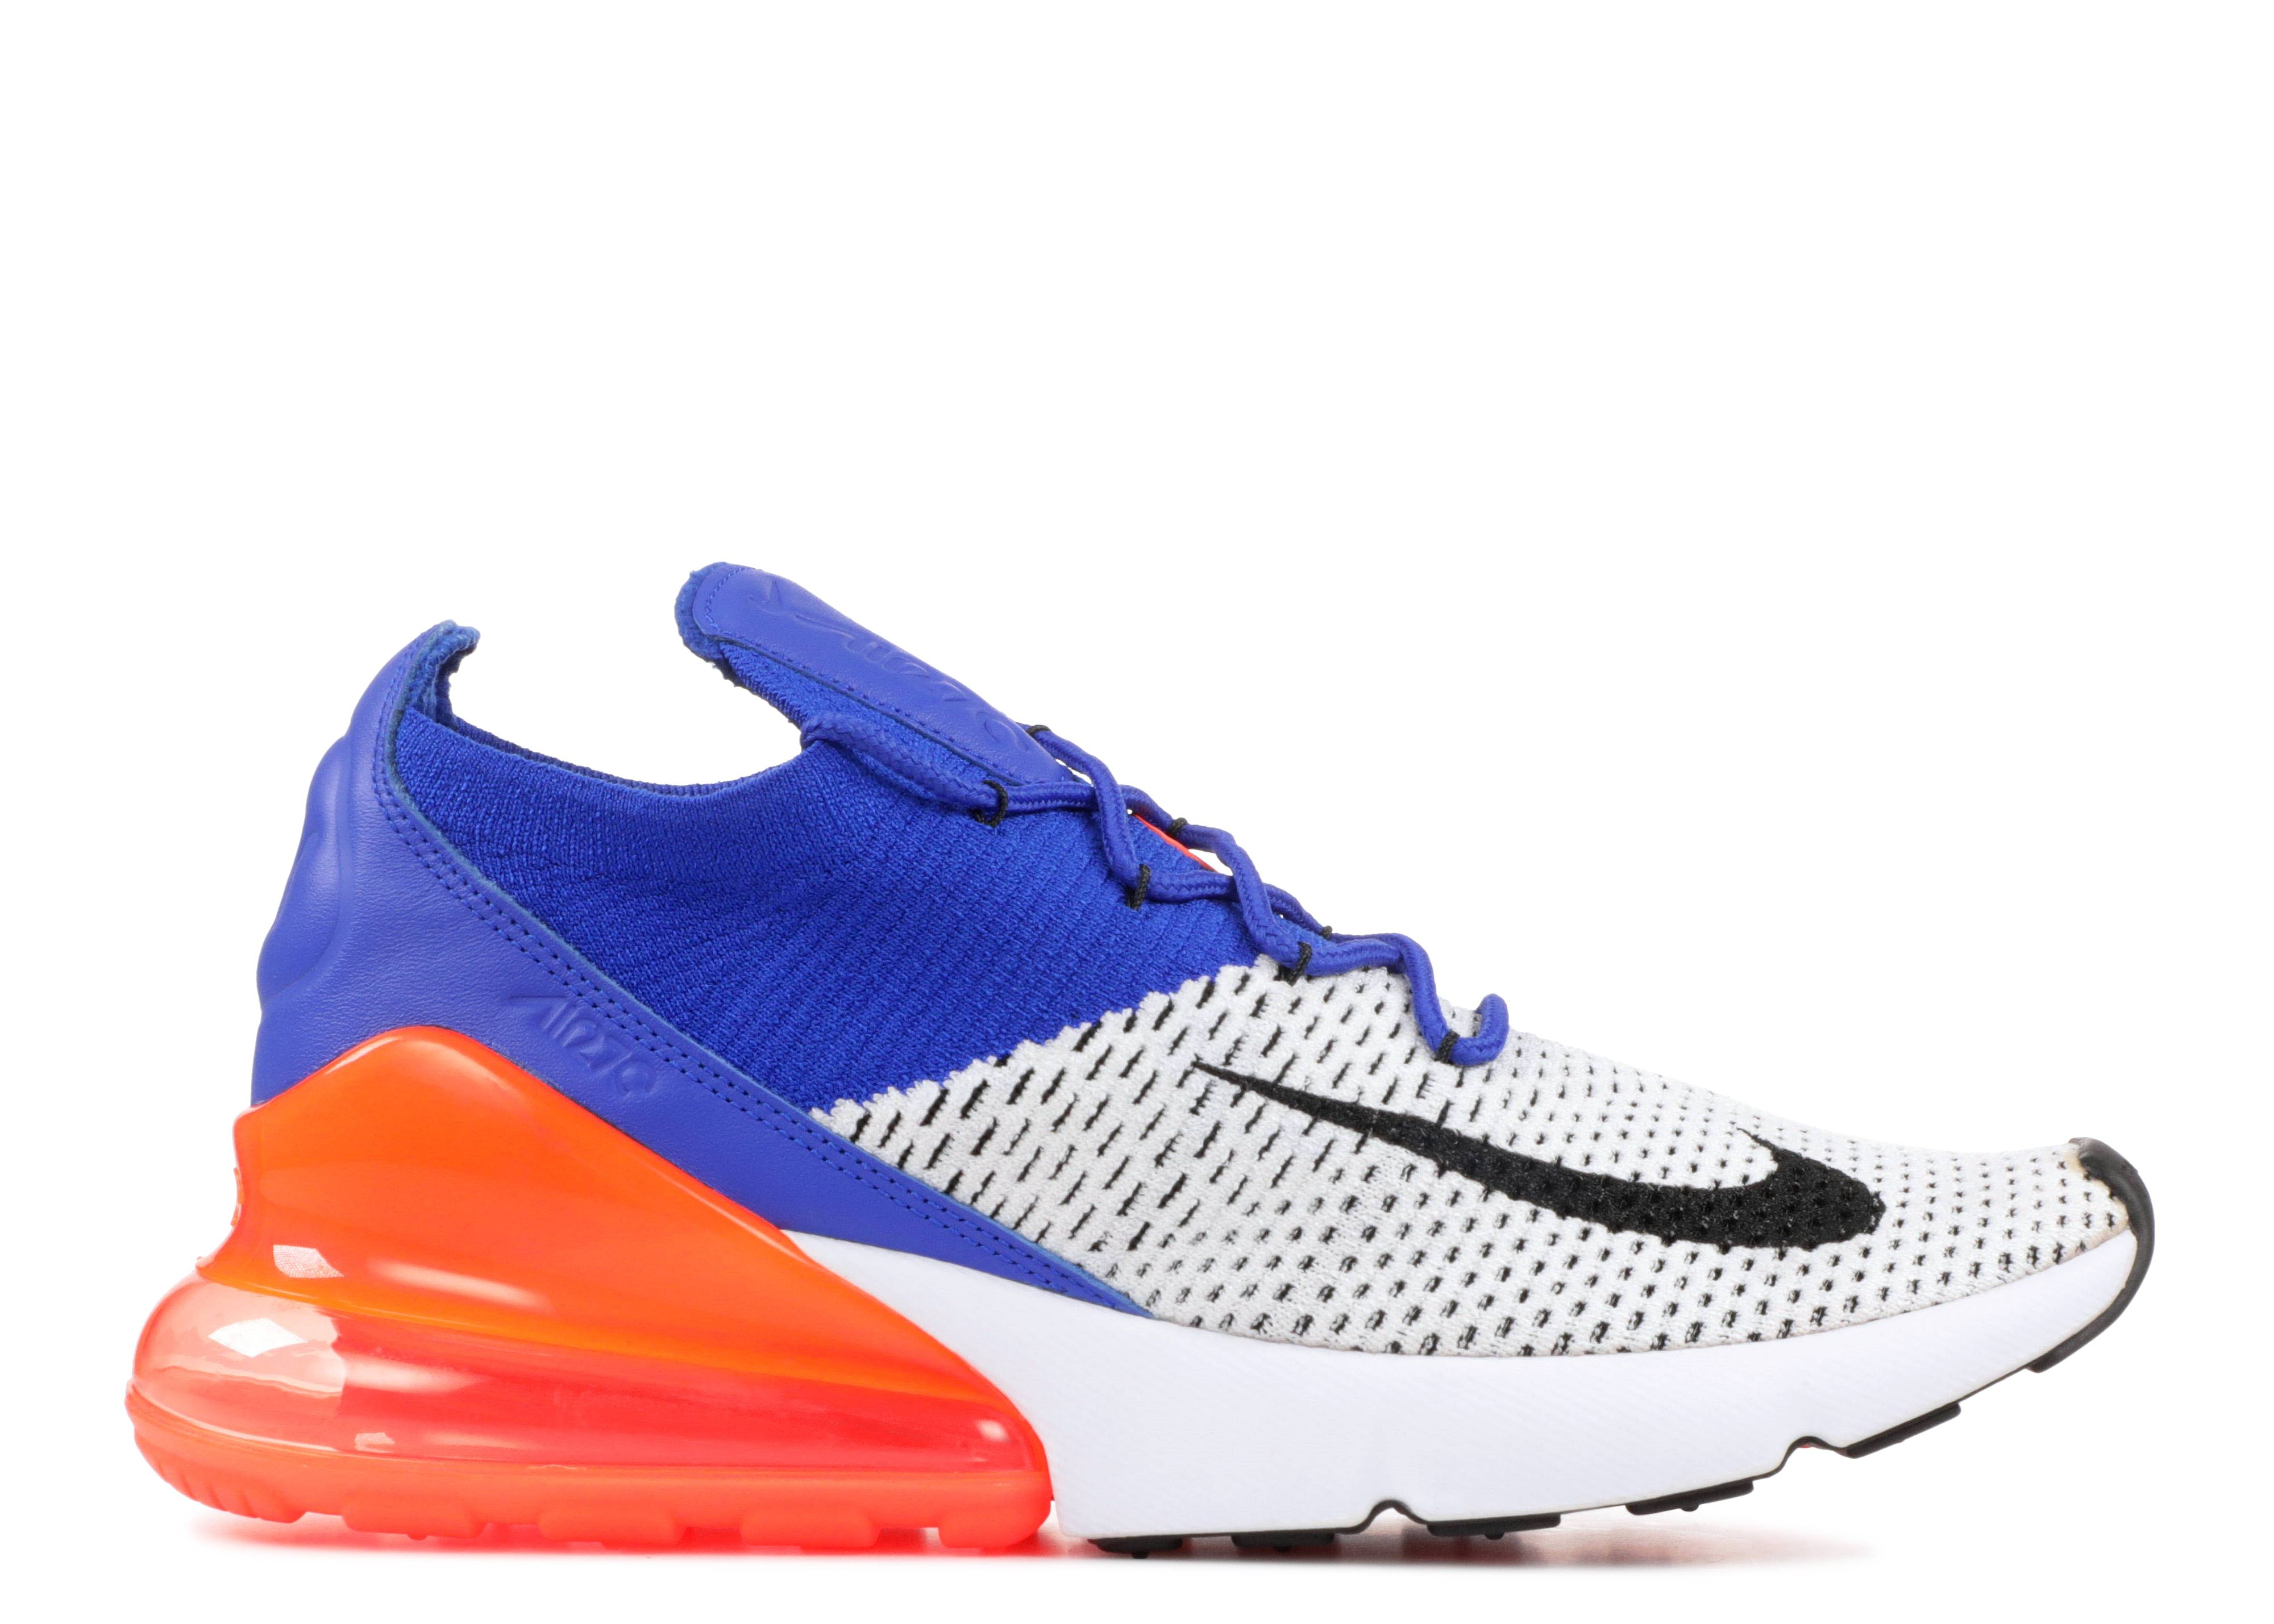 Air Max 270 Flyknit 'Blue Crimson'